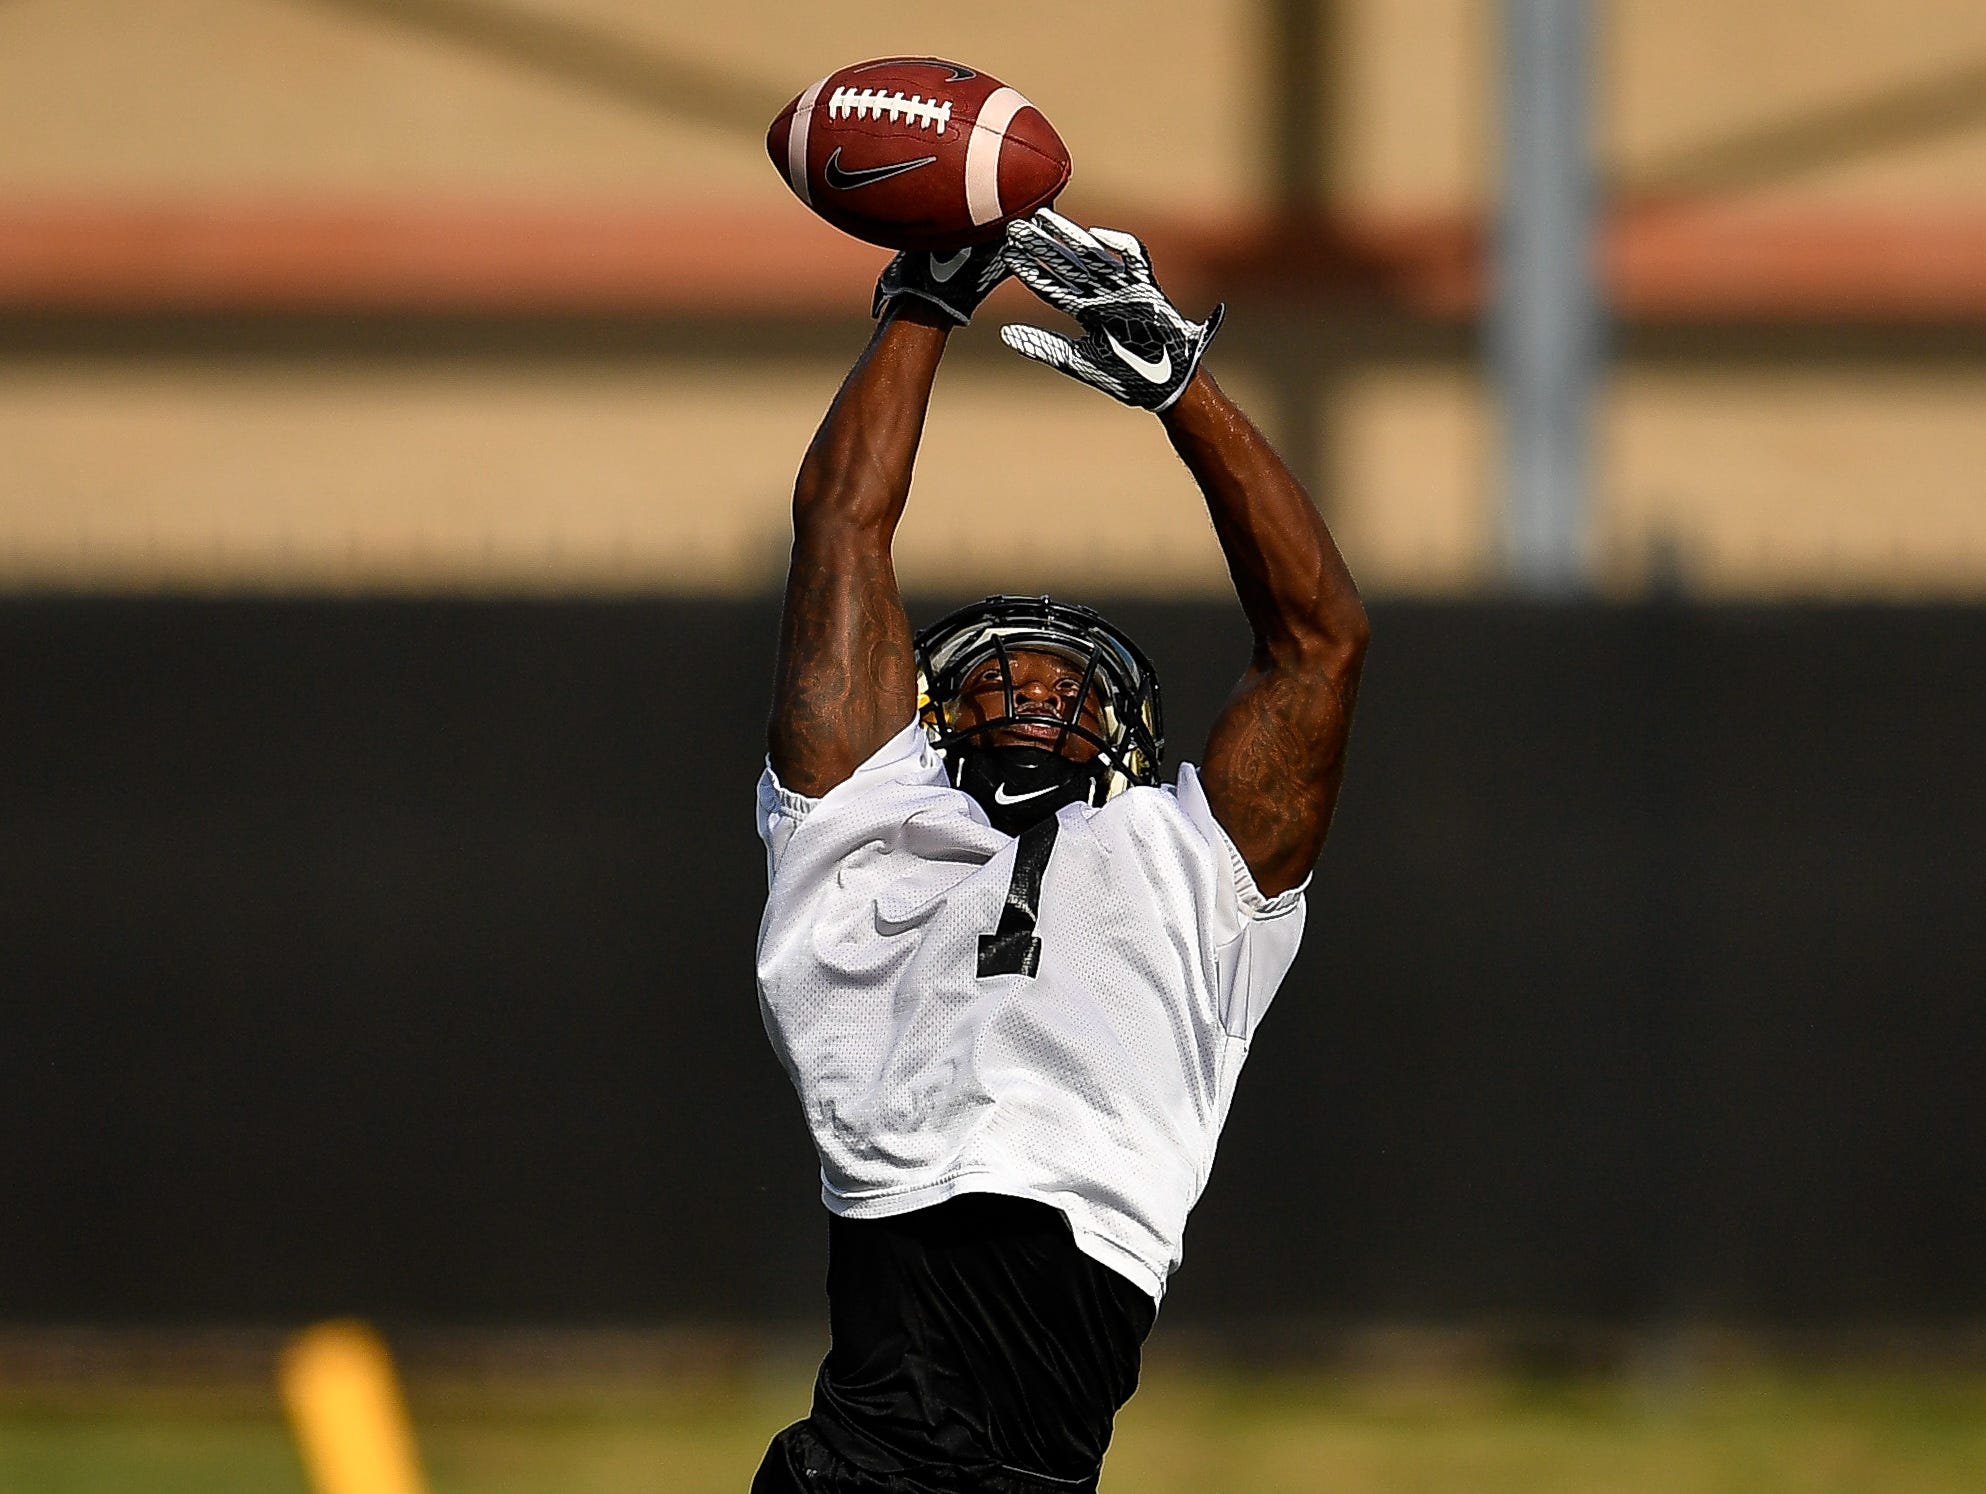 Vanderbilt running back Ralph Webb makes a catch during the first practice of preseason camp Monday, July 31, 2017.